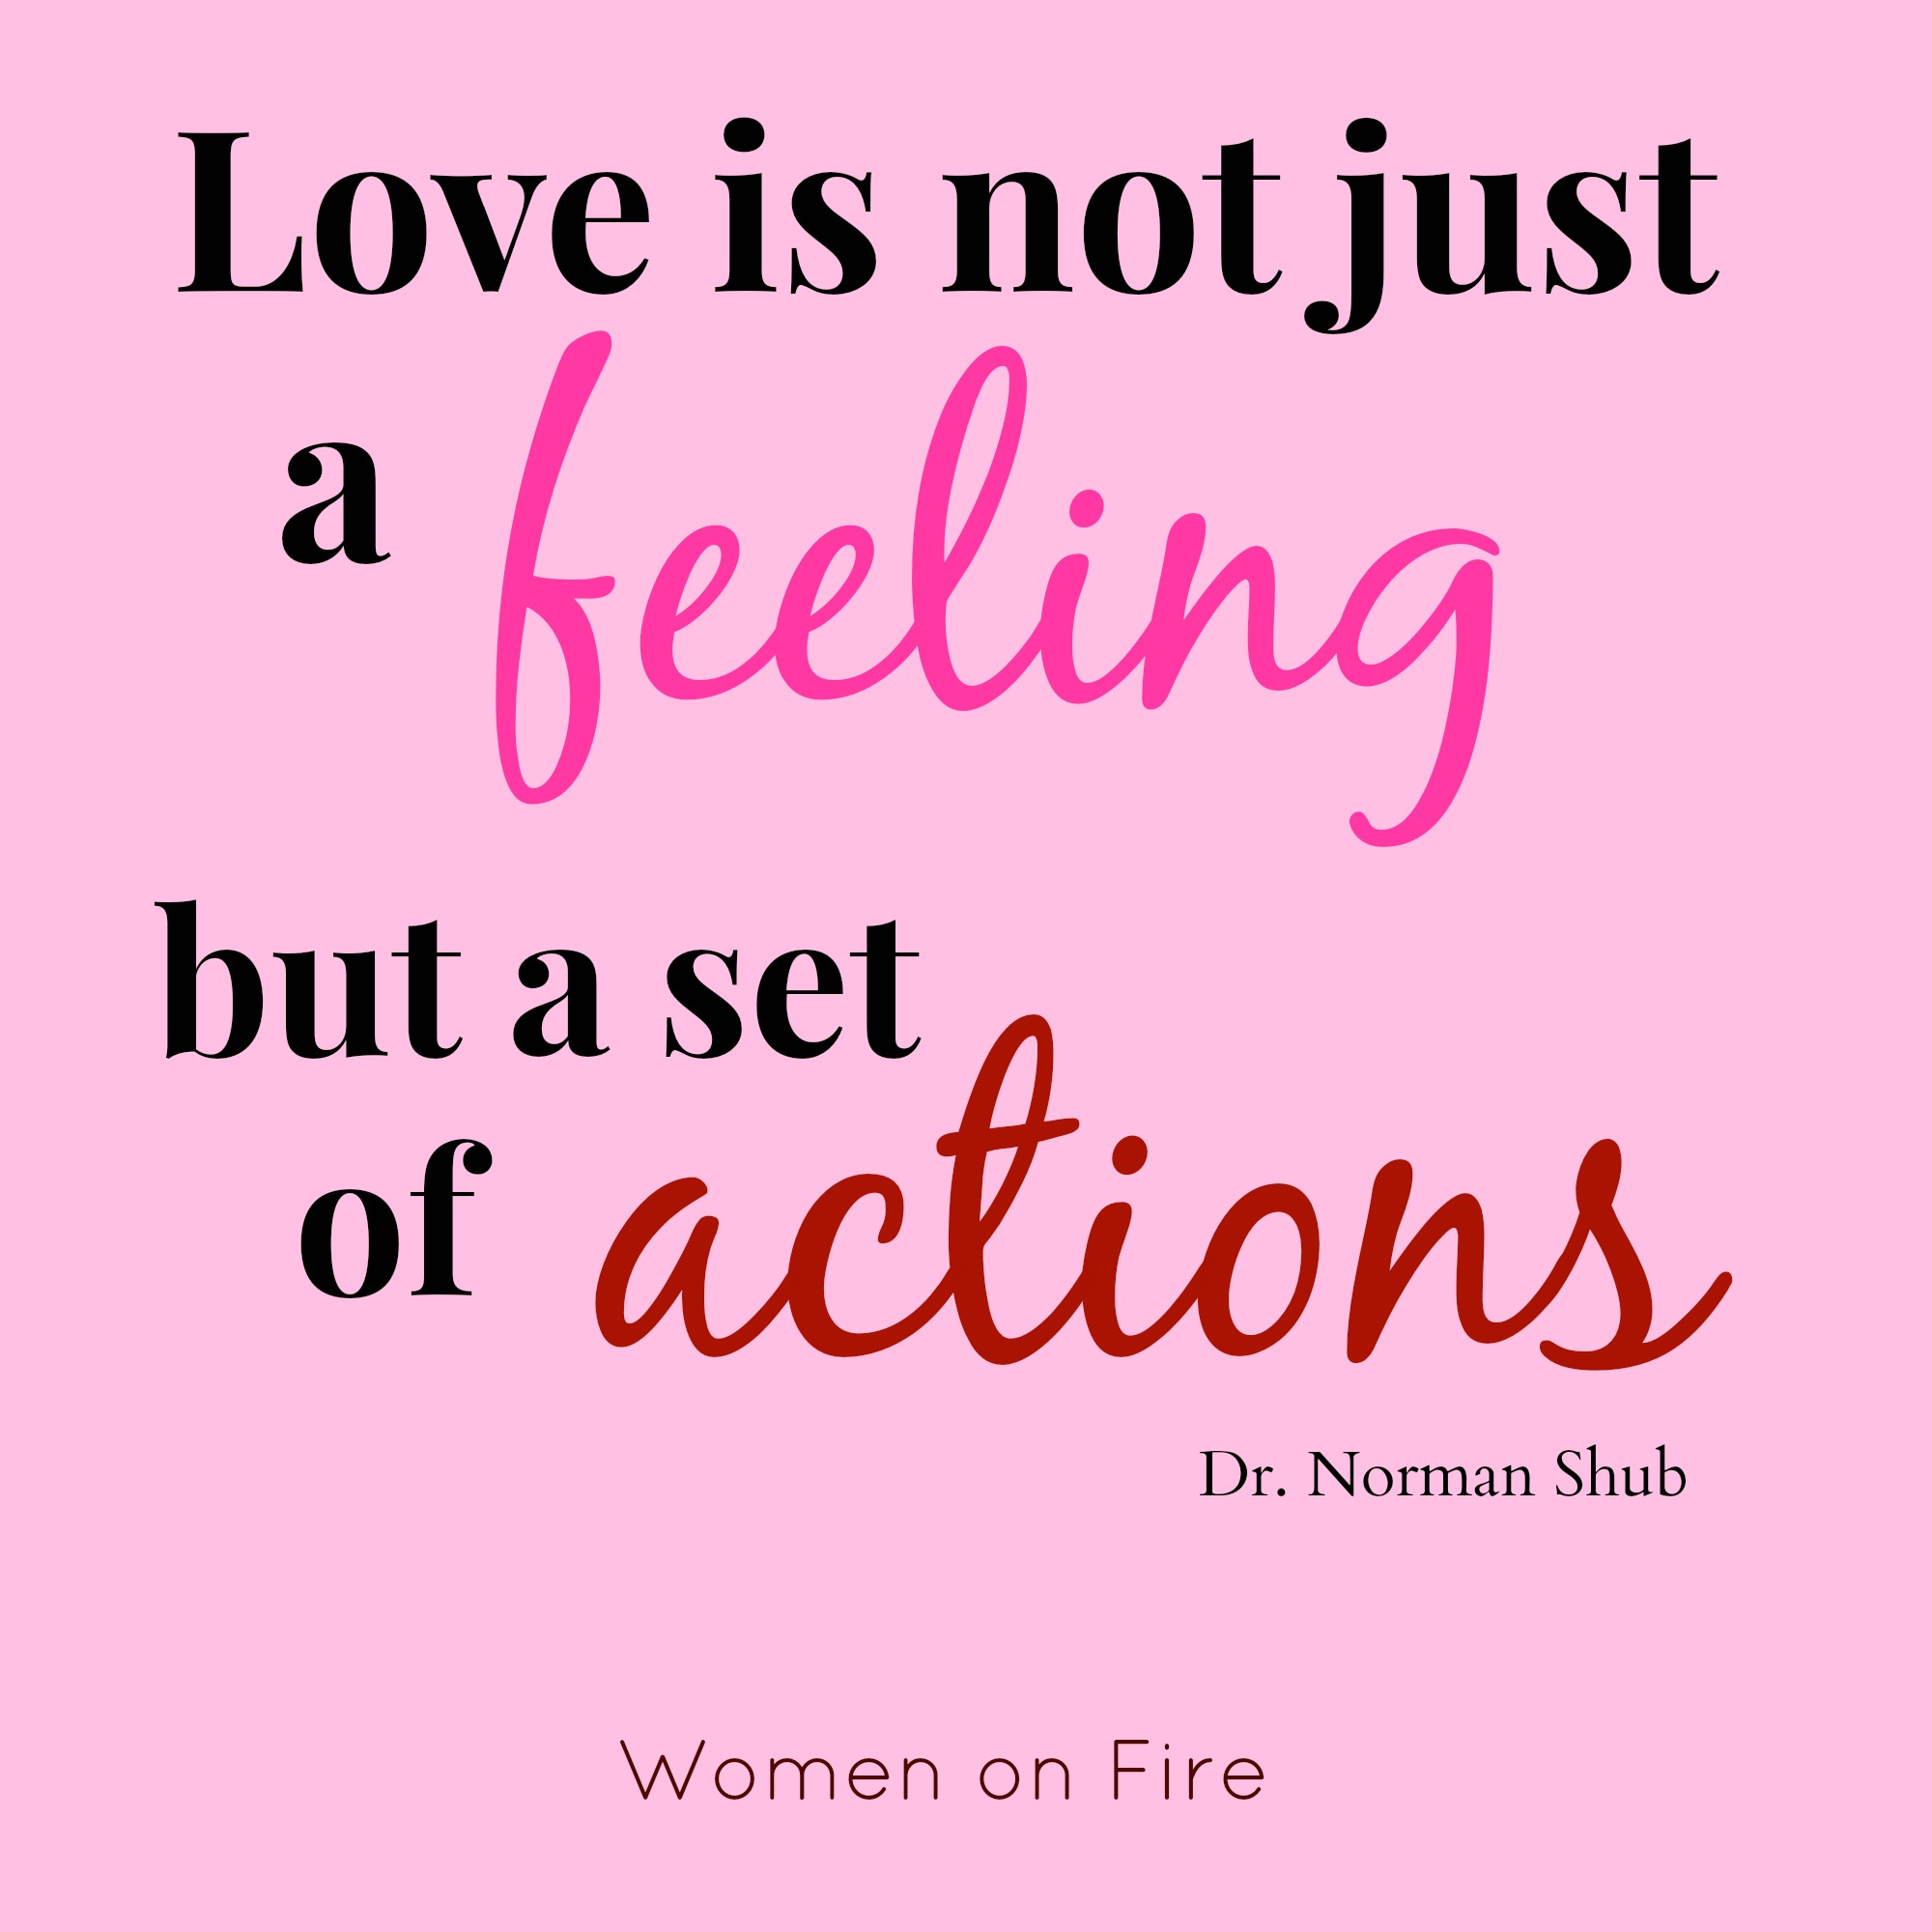 Love-is-not-just-a-feeling-but-a-set-of-actions-womenonfire.jpg